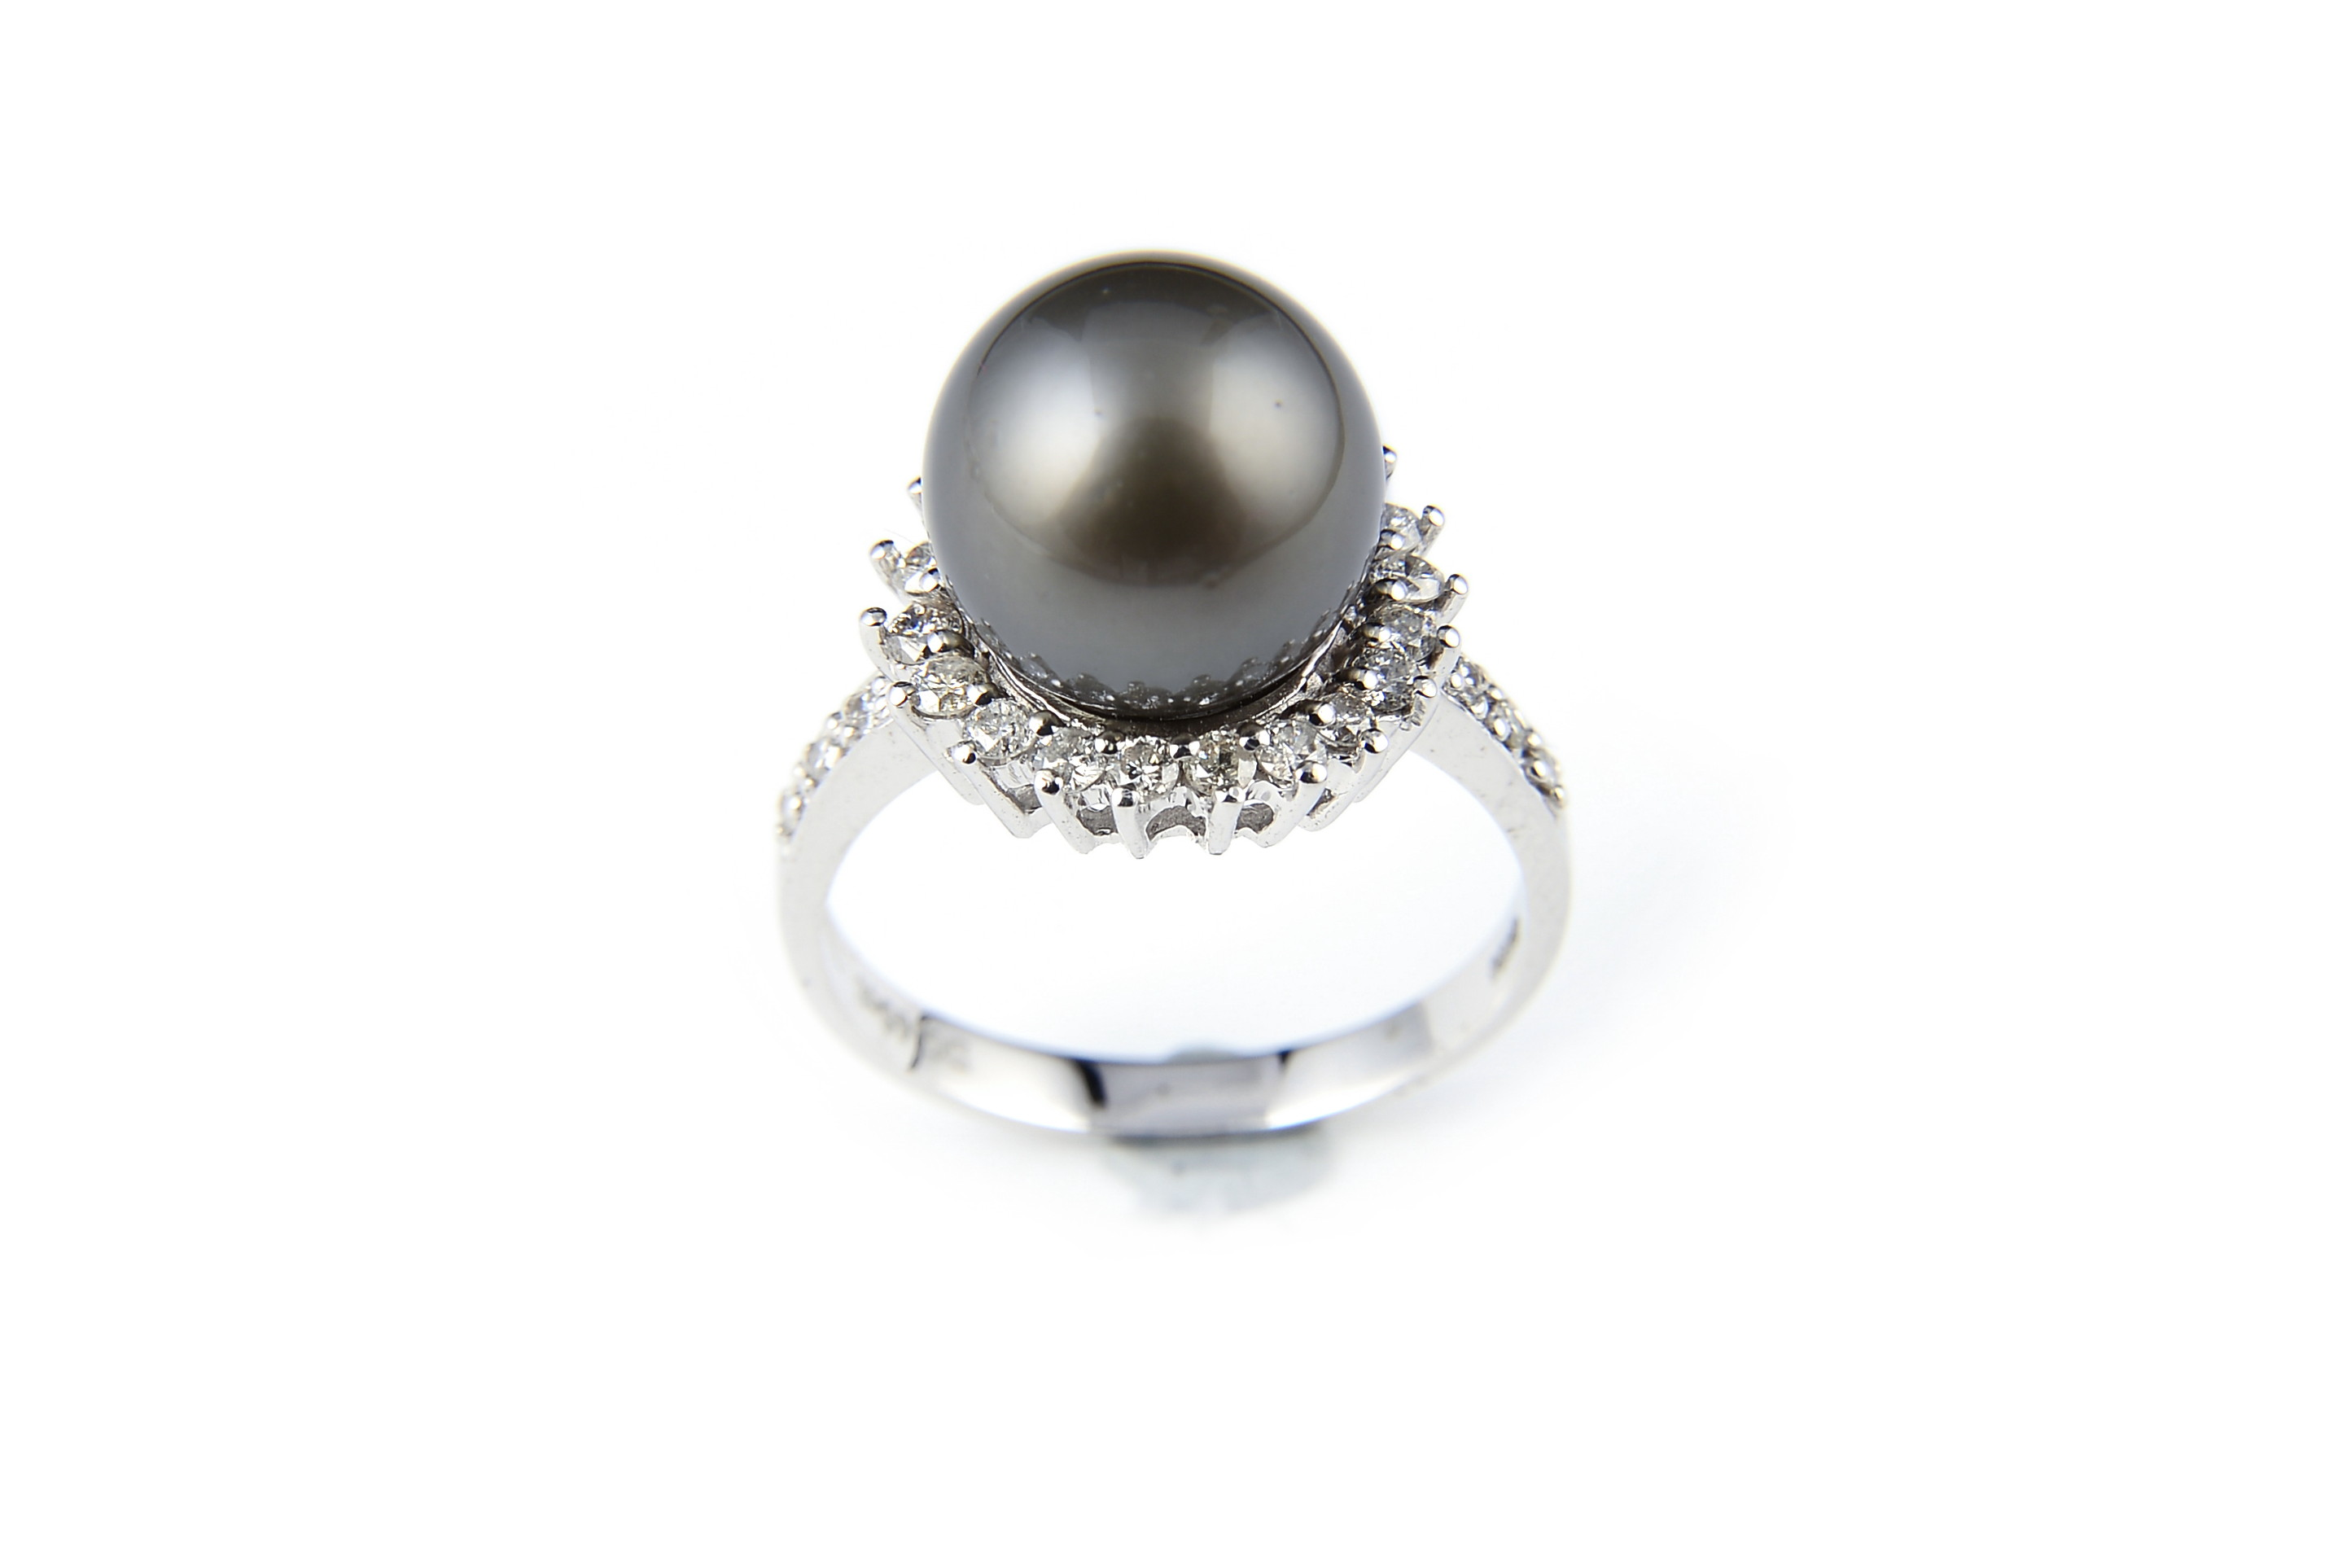 AAA+ Gem Quality Black Tahitian Pearl Diamond Ring -rg1